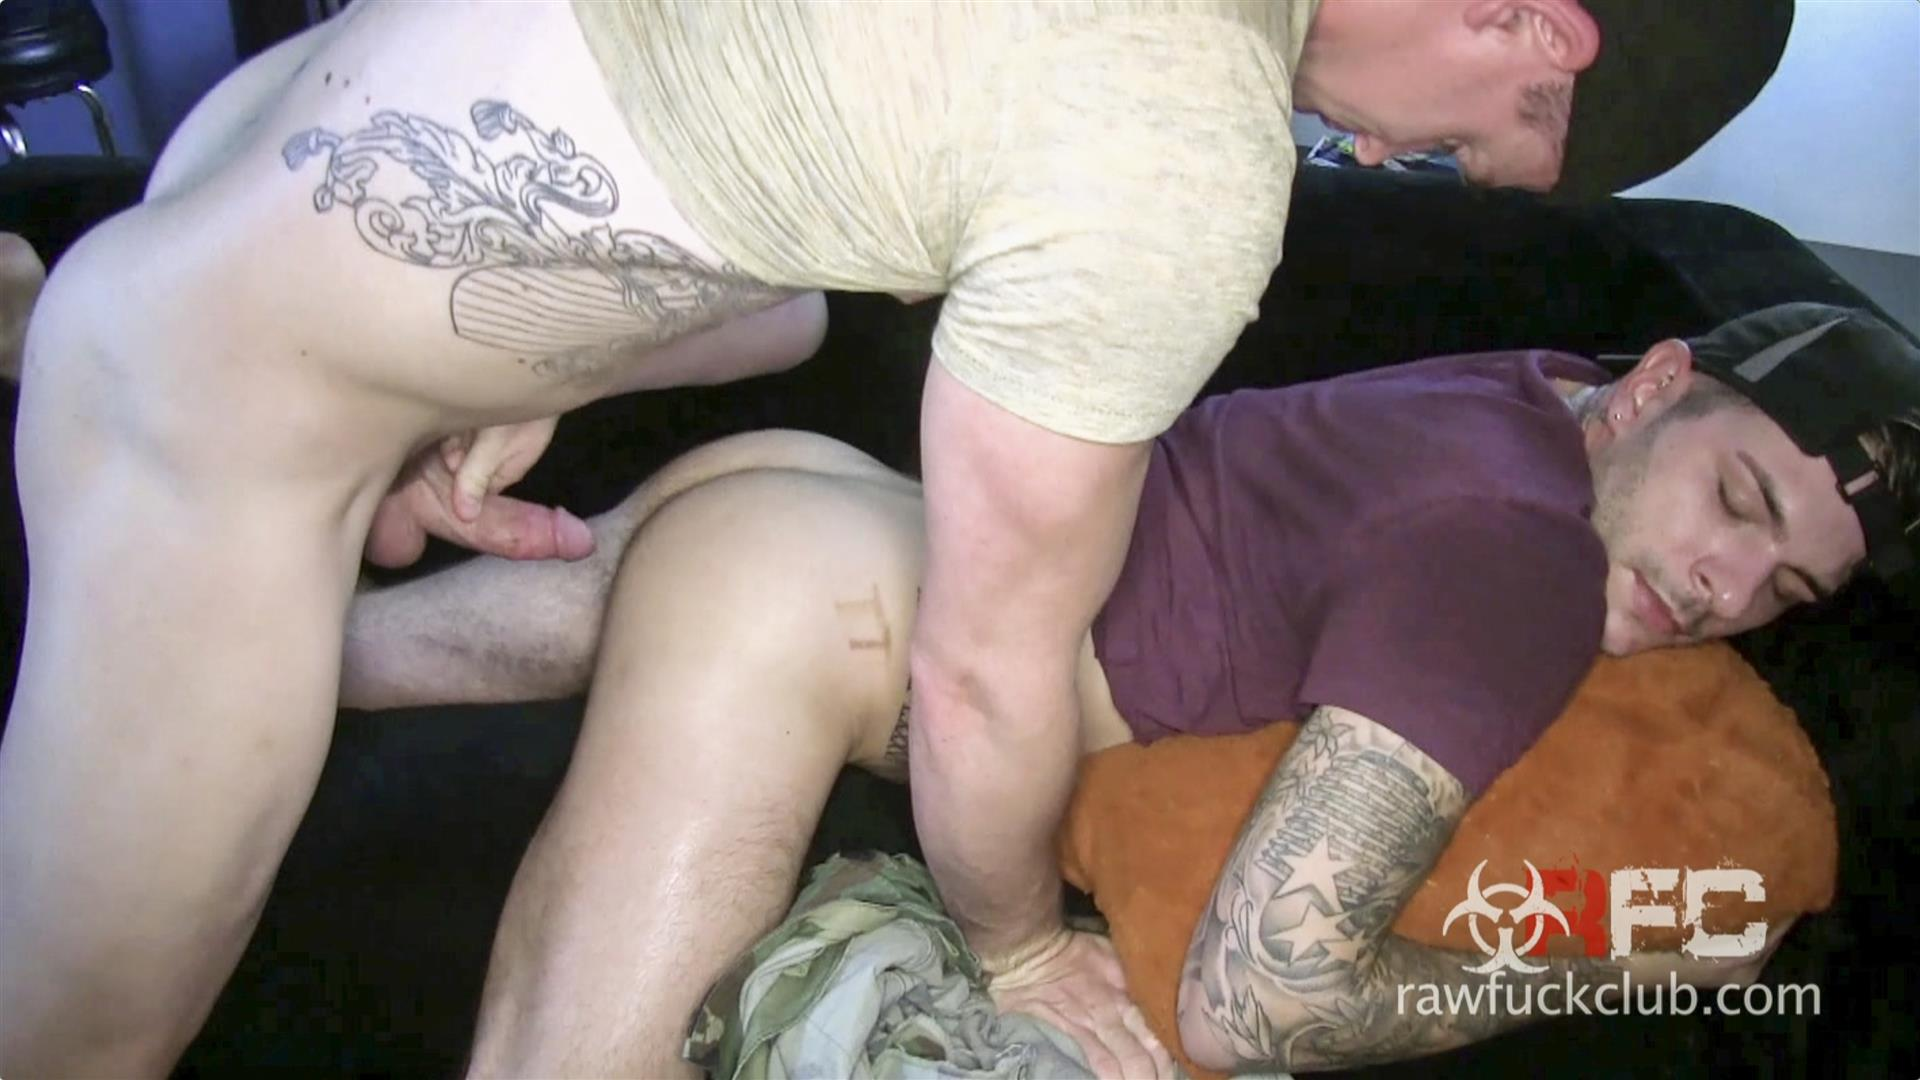 Raw Fuck Club Alessio Ribiero Hairy Ass Bareback Fuck Amateur Gay Porn 03 Picking Up A Drunk Trick At The Club And Fucking Him Raw